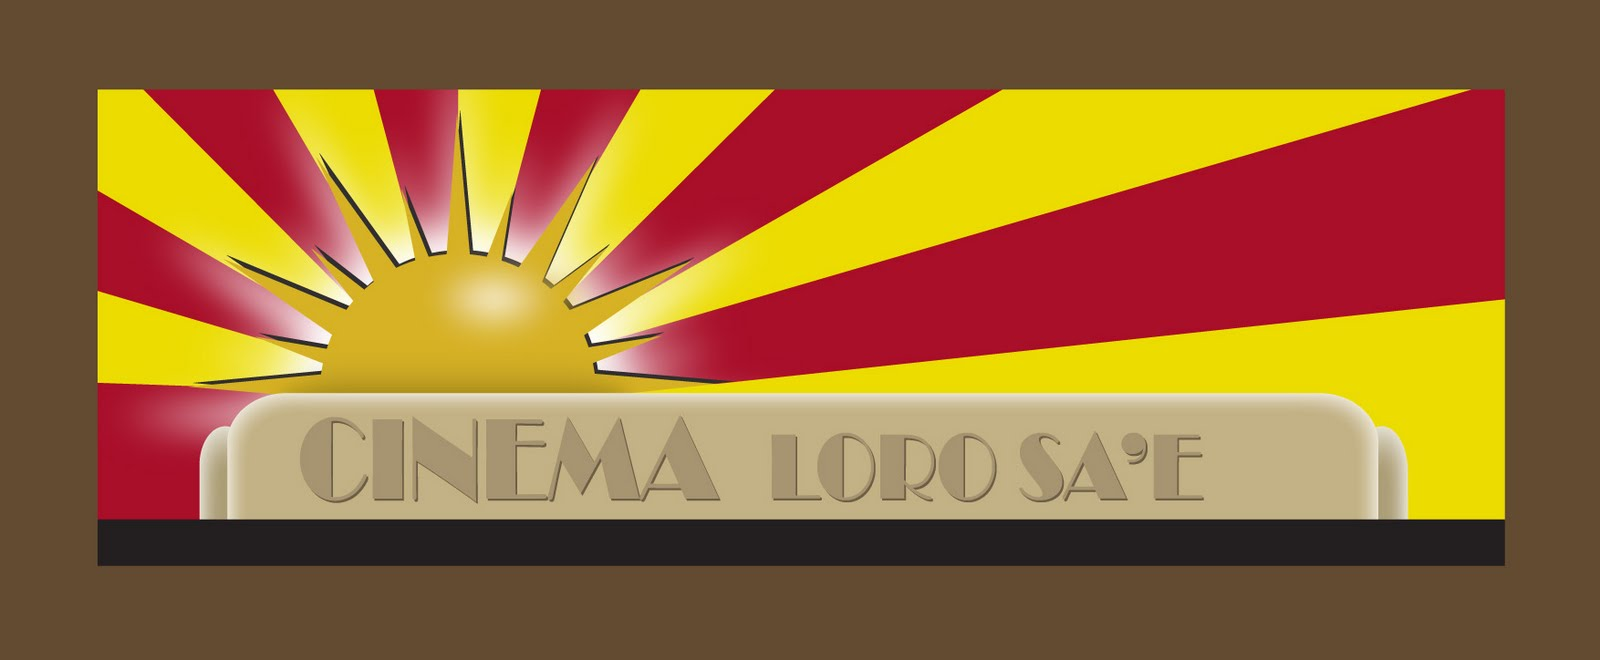 Cinema Lorosae